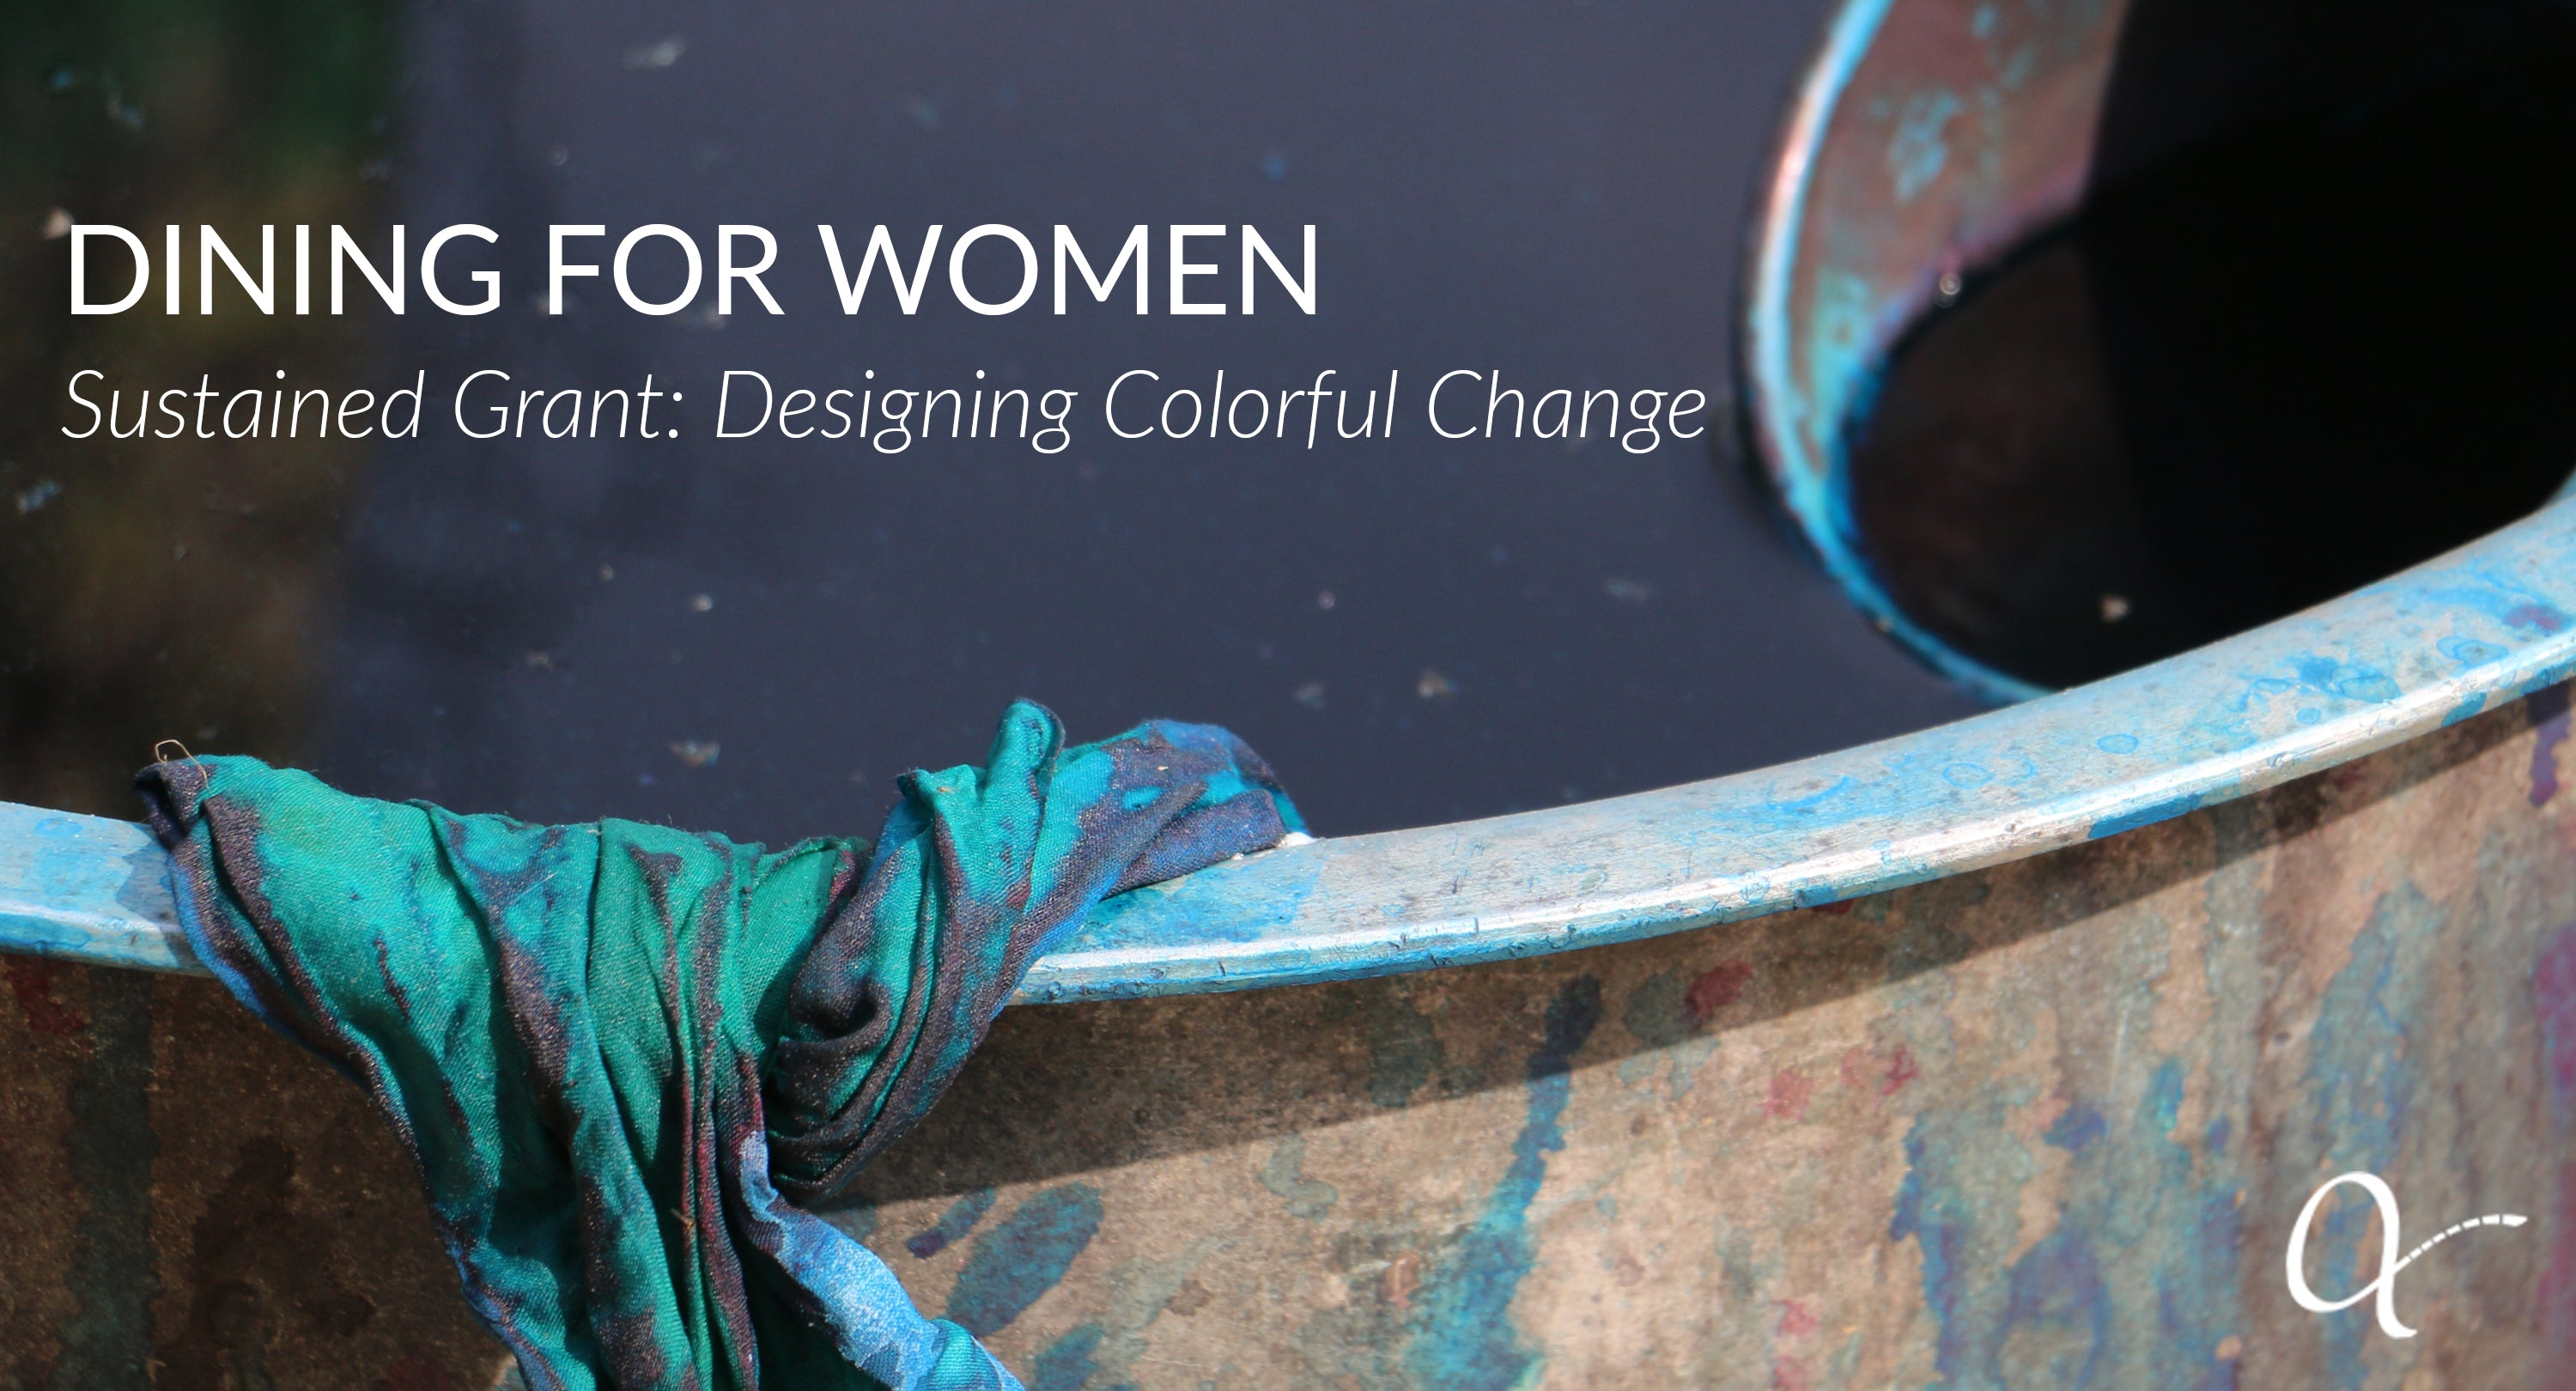 Dining for Women: Designing Colorful Change grant